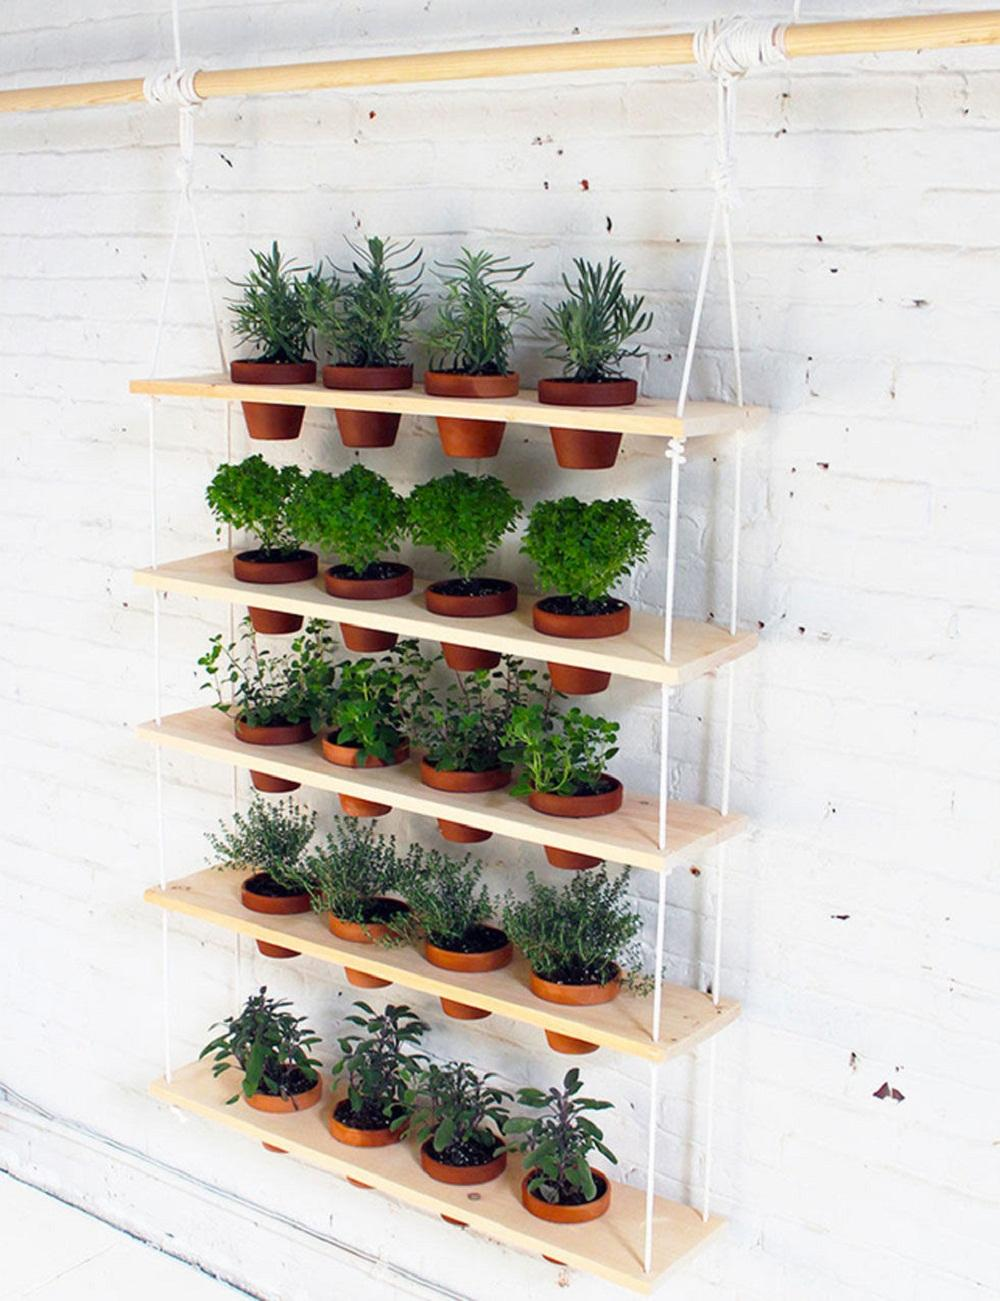 Transform Airy Wooden Shelving Into an Herb Garden